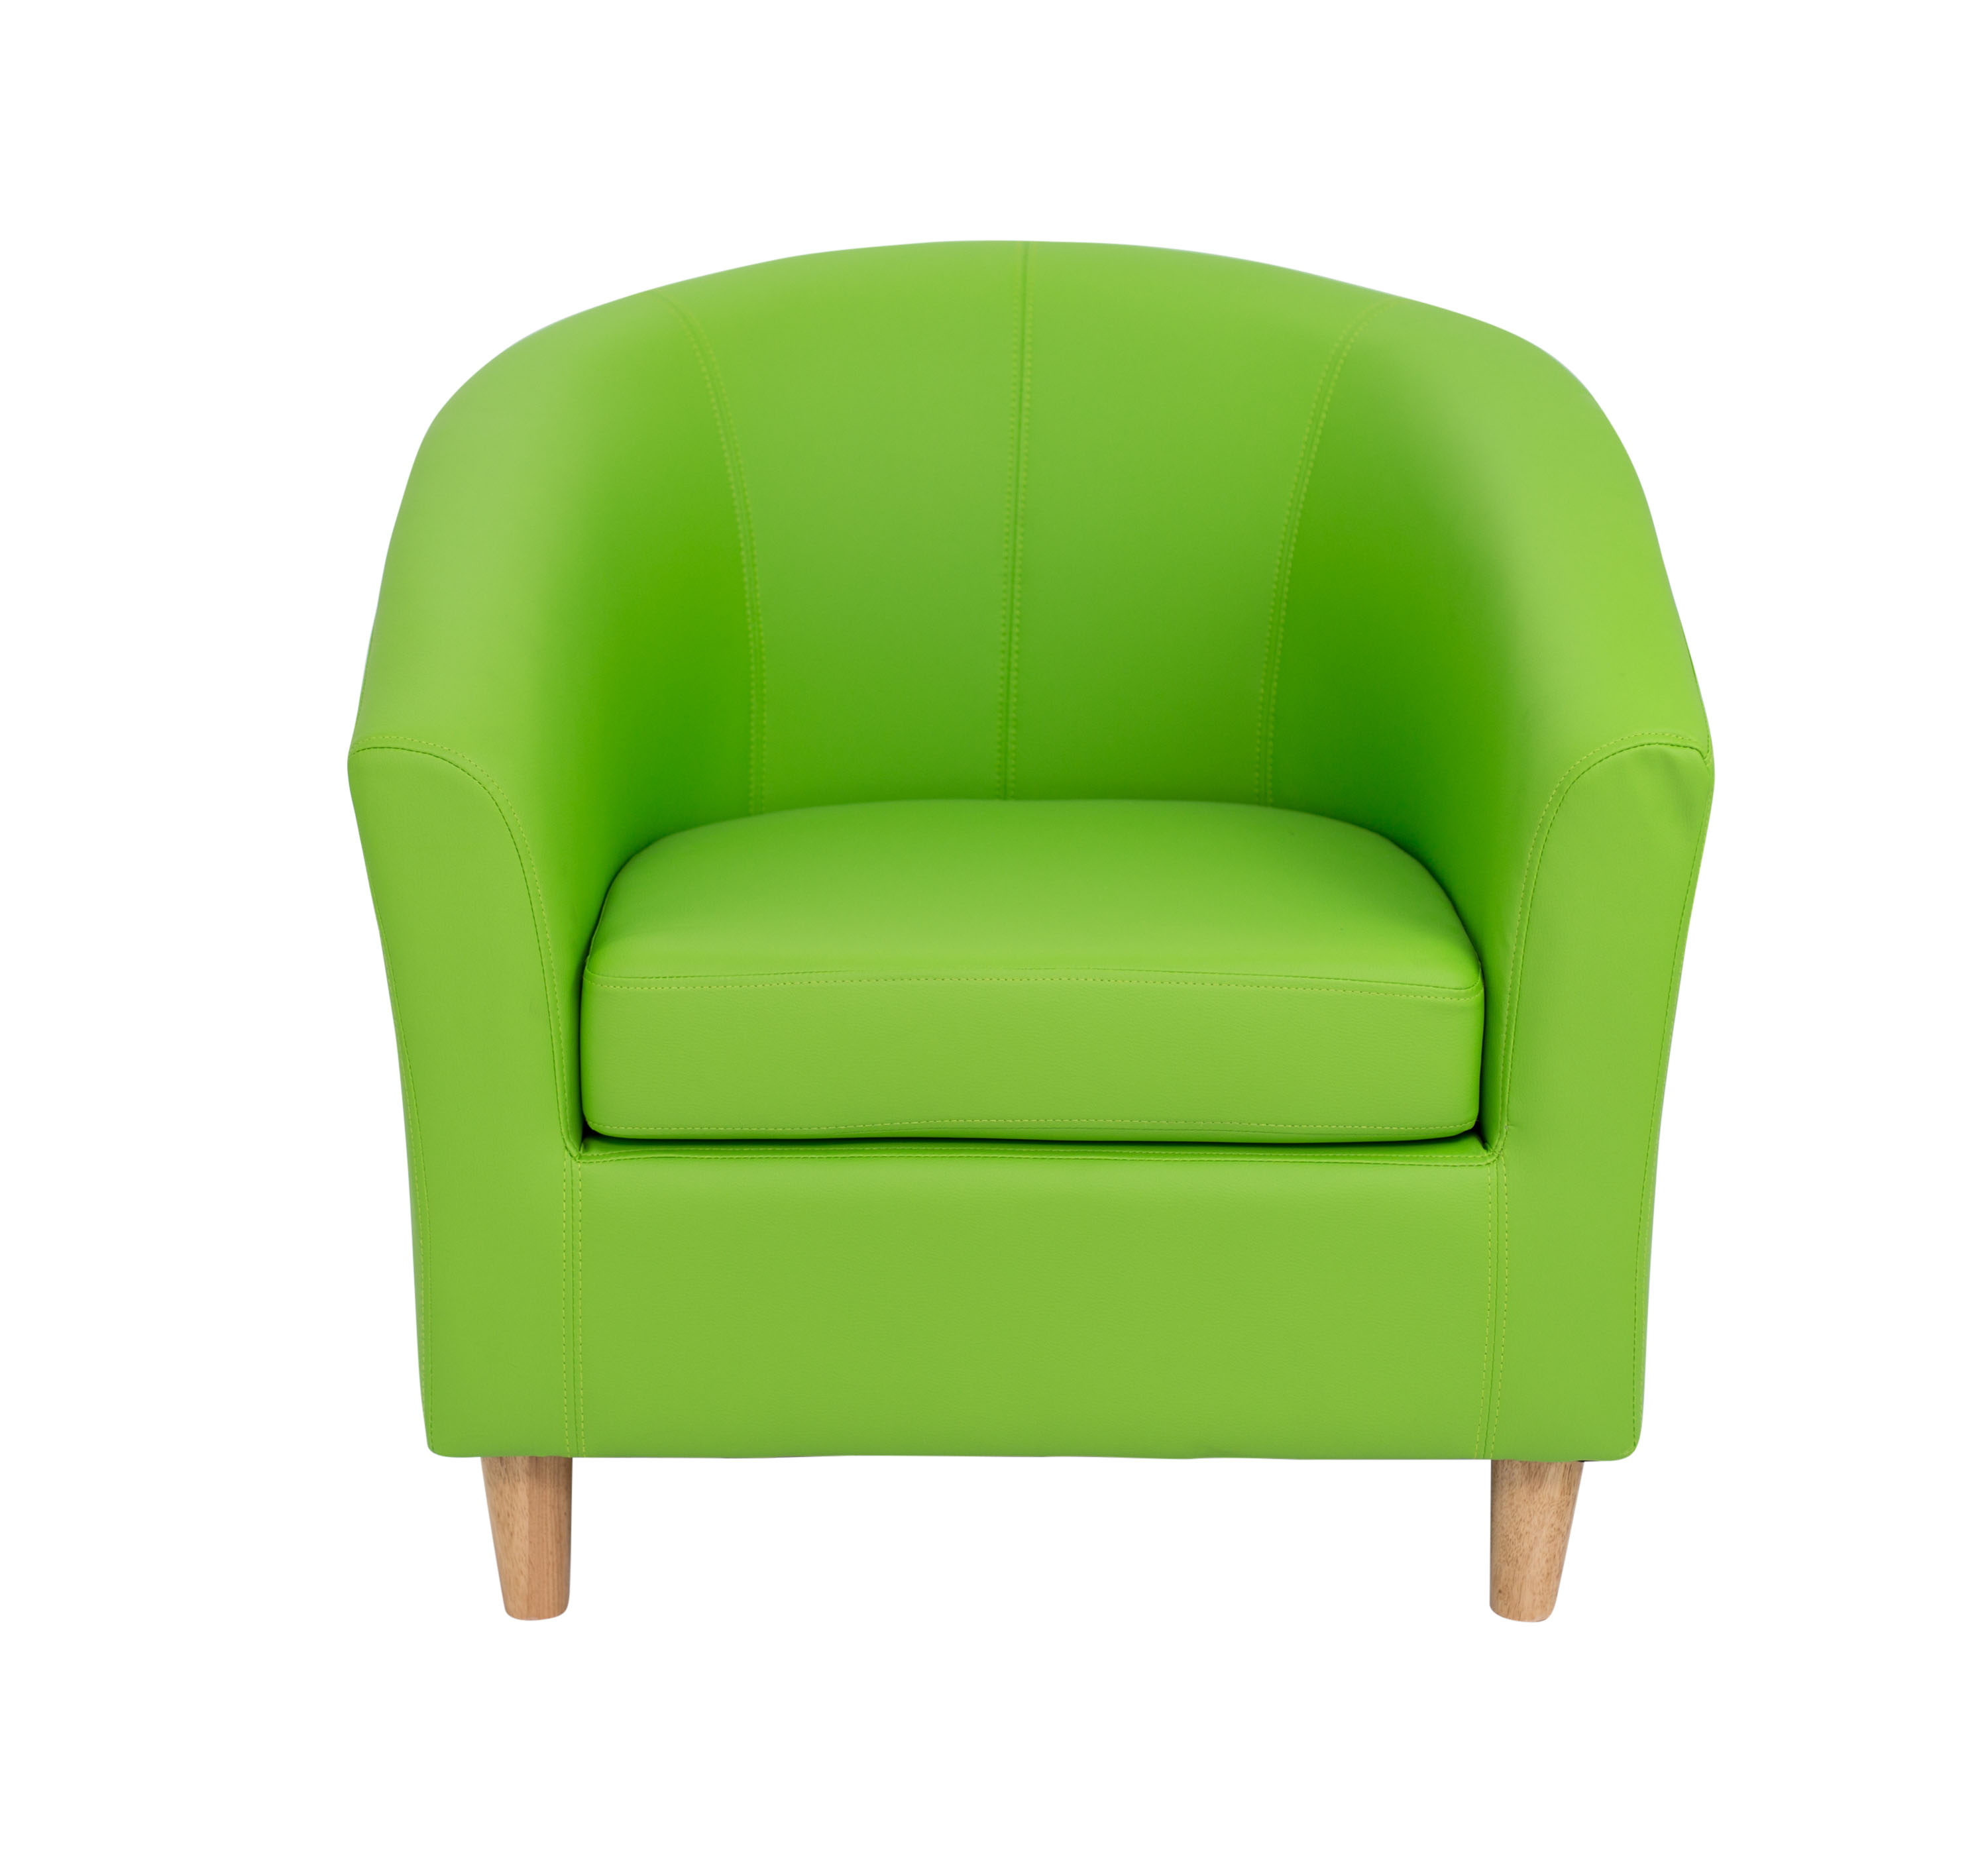 Rz Two Seater Sofa Or Armchair Faux Leather Lime Green Ebay